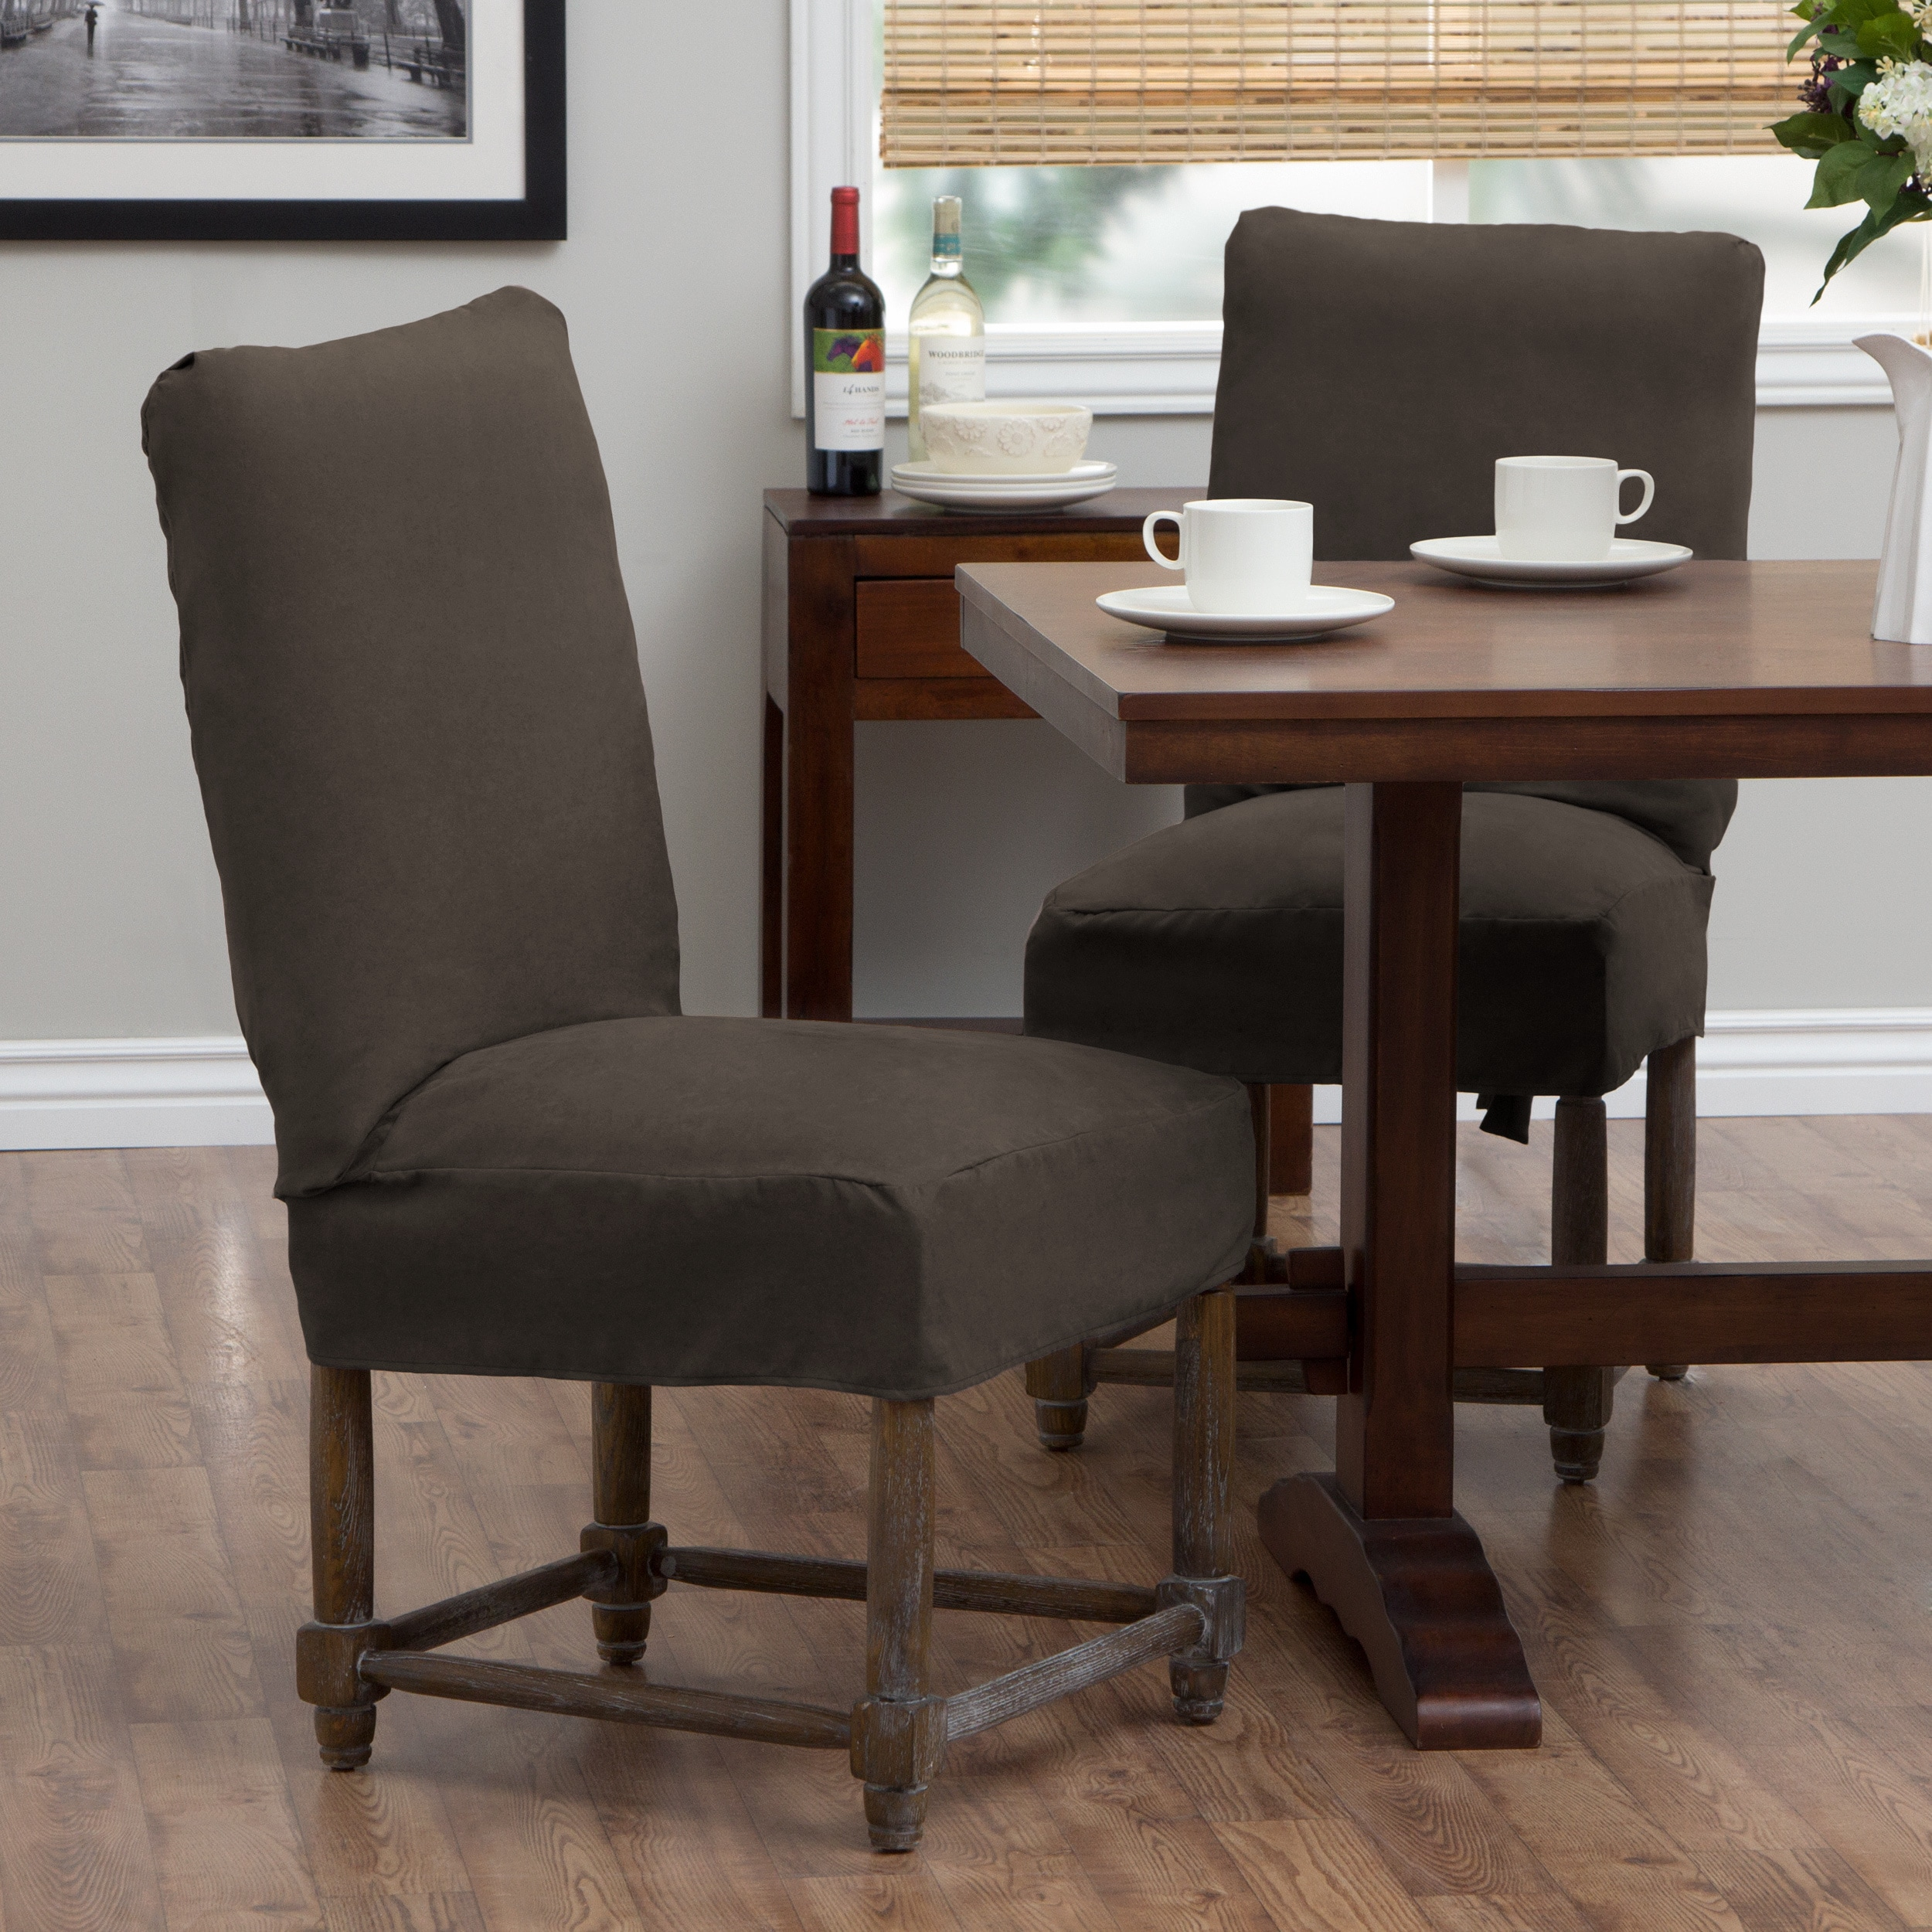 Dining Chair Slipcover Tailor Fit Relaxed Fit Smooth Suede Short Dining Chair Slipcover Set Of 2